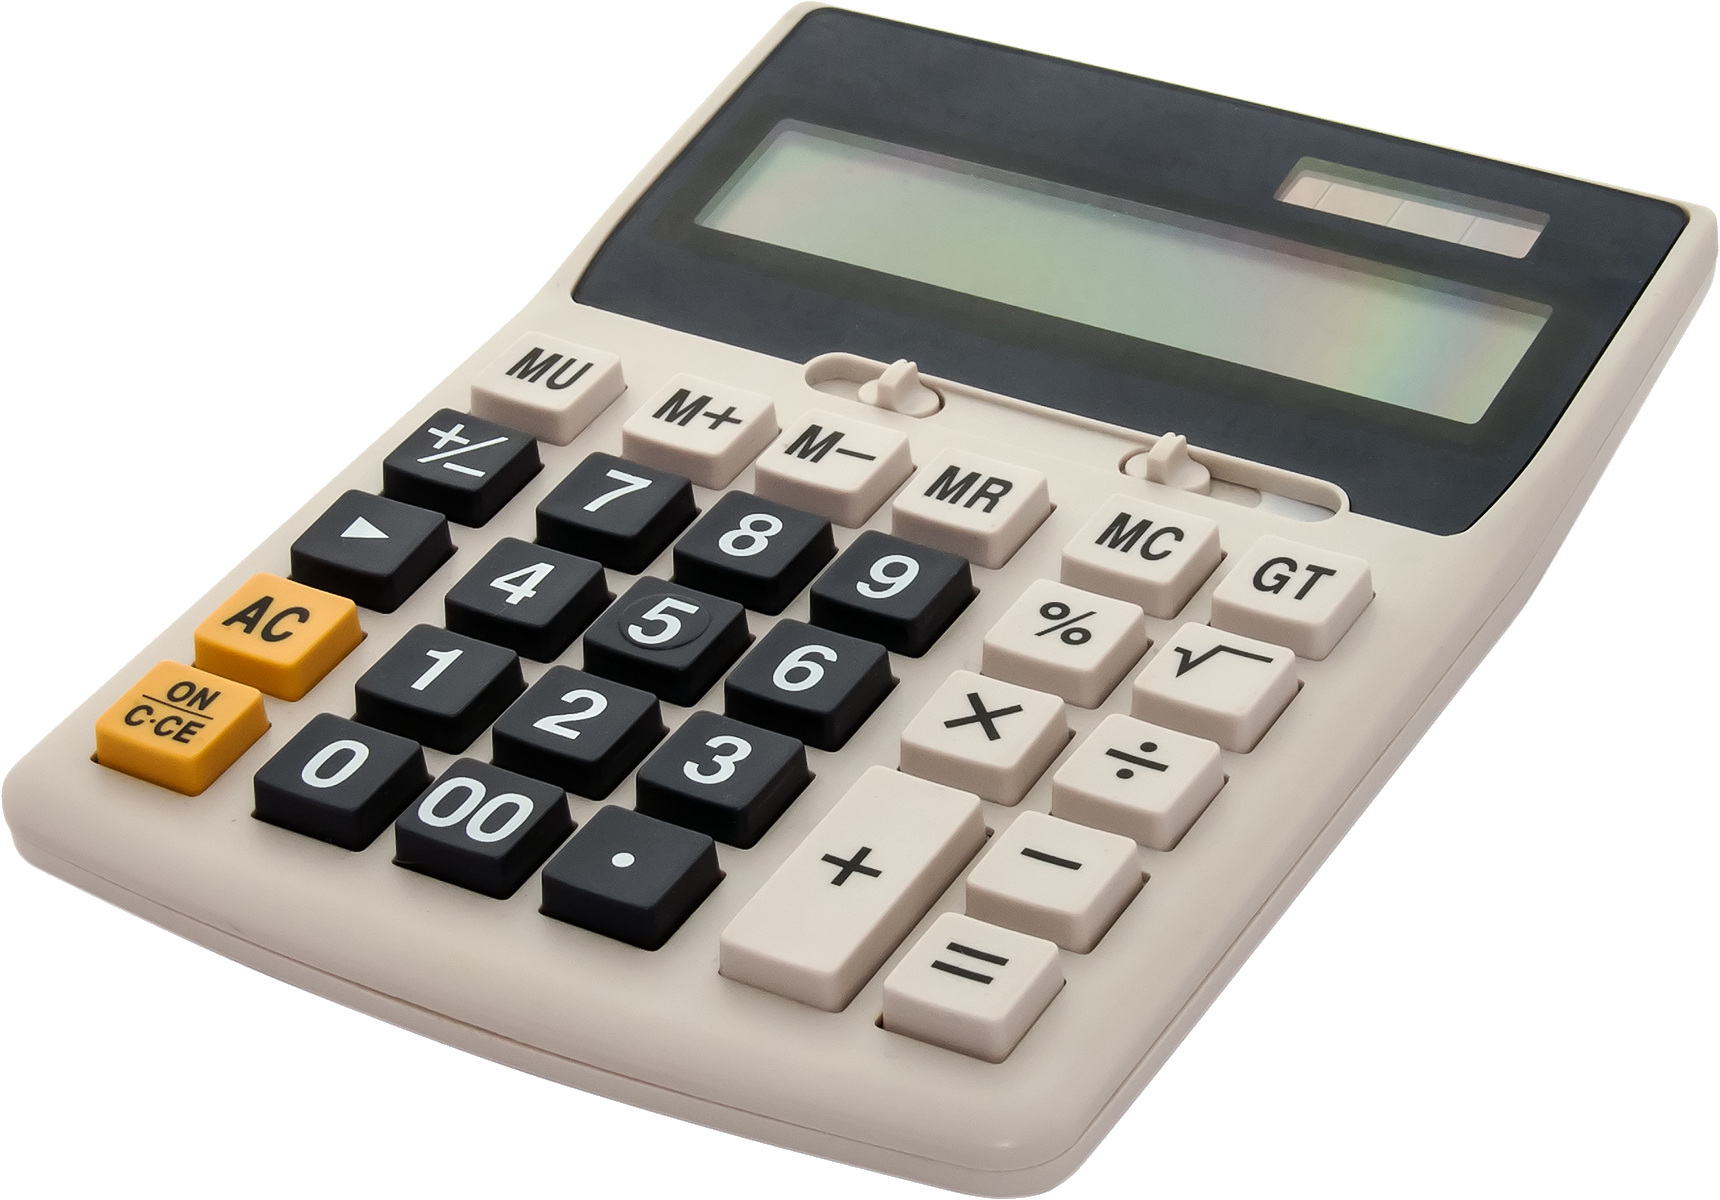 Pin by Charudeal on objects | Calculator, Building a website, Design